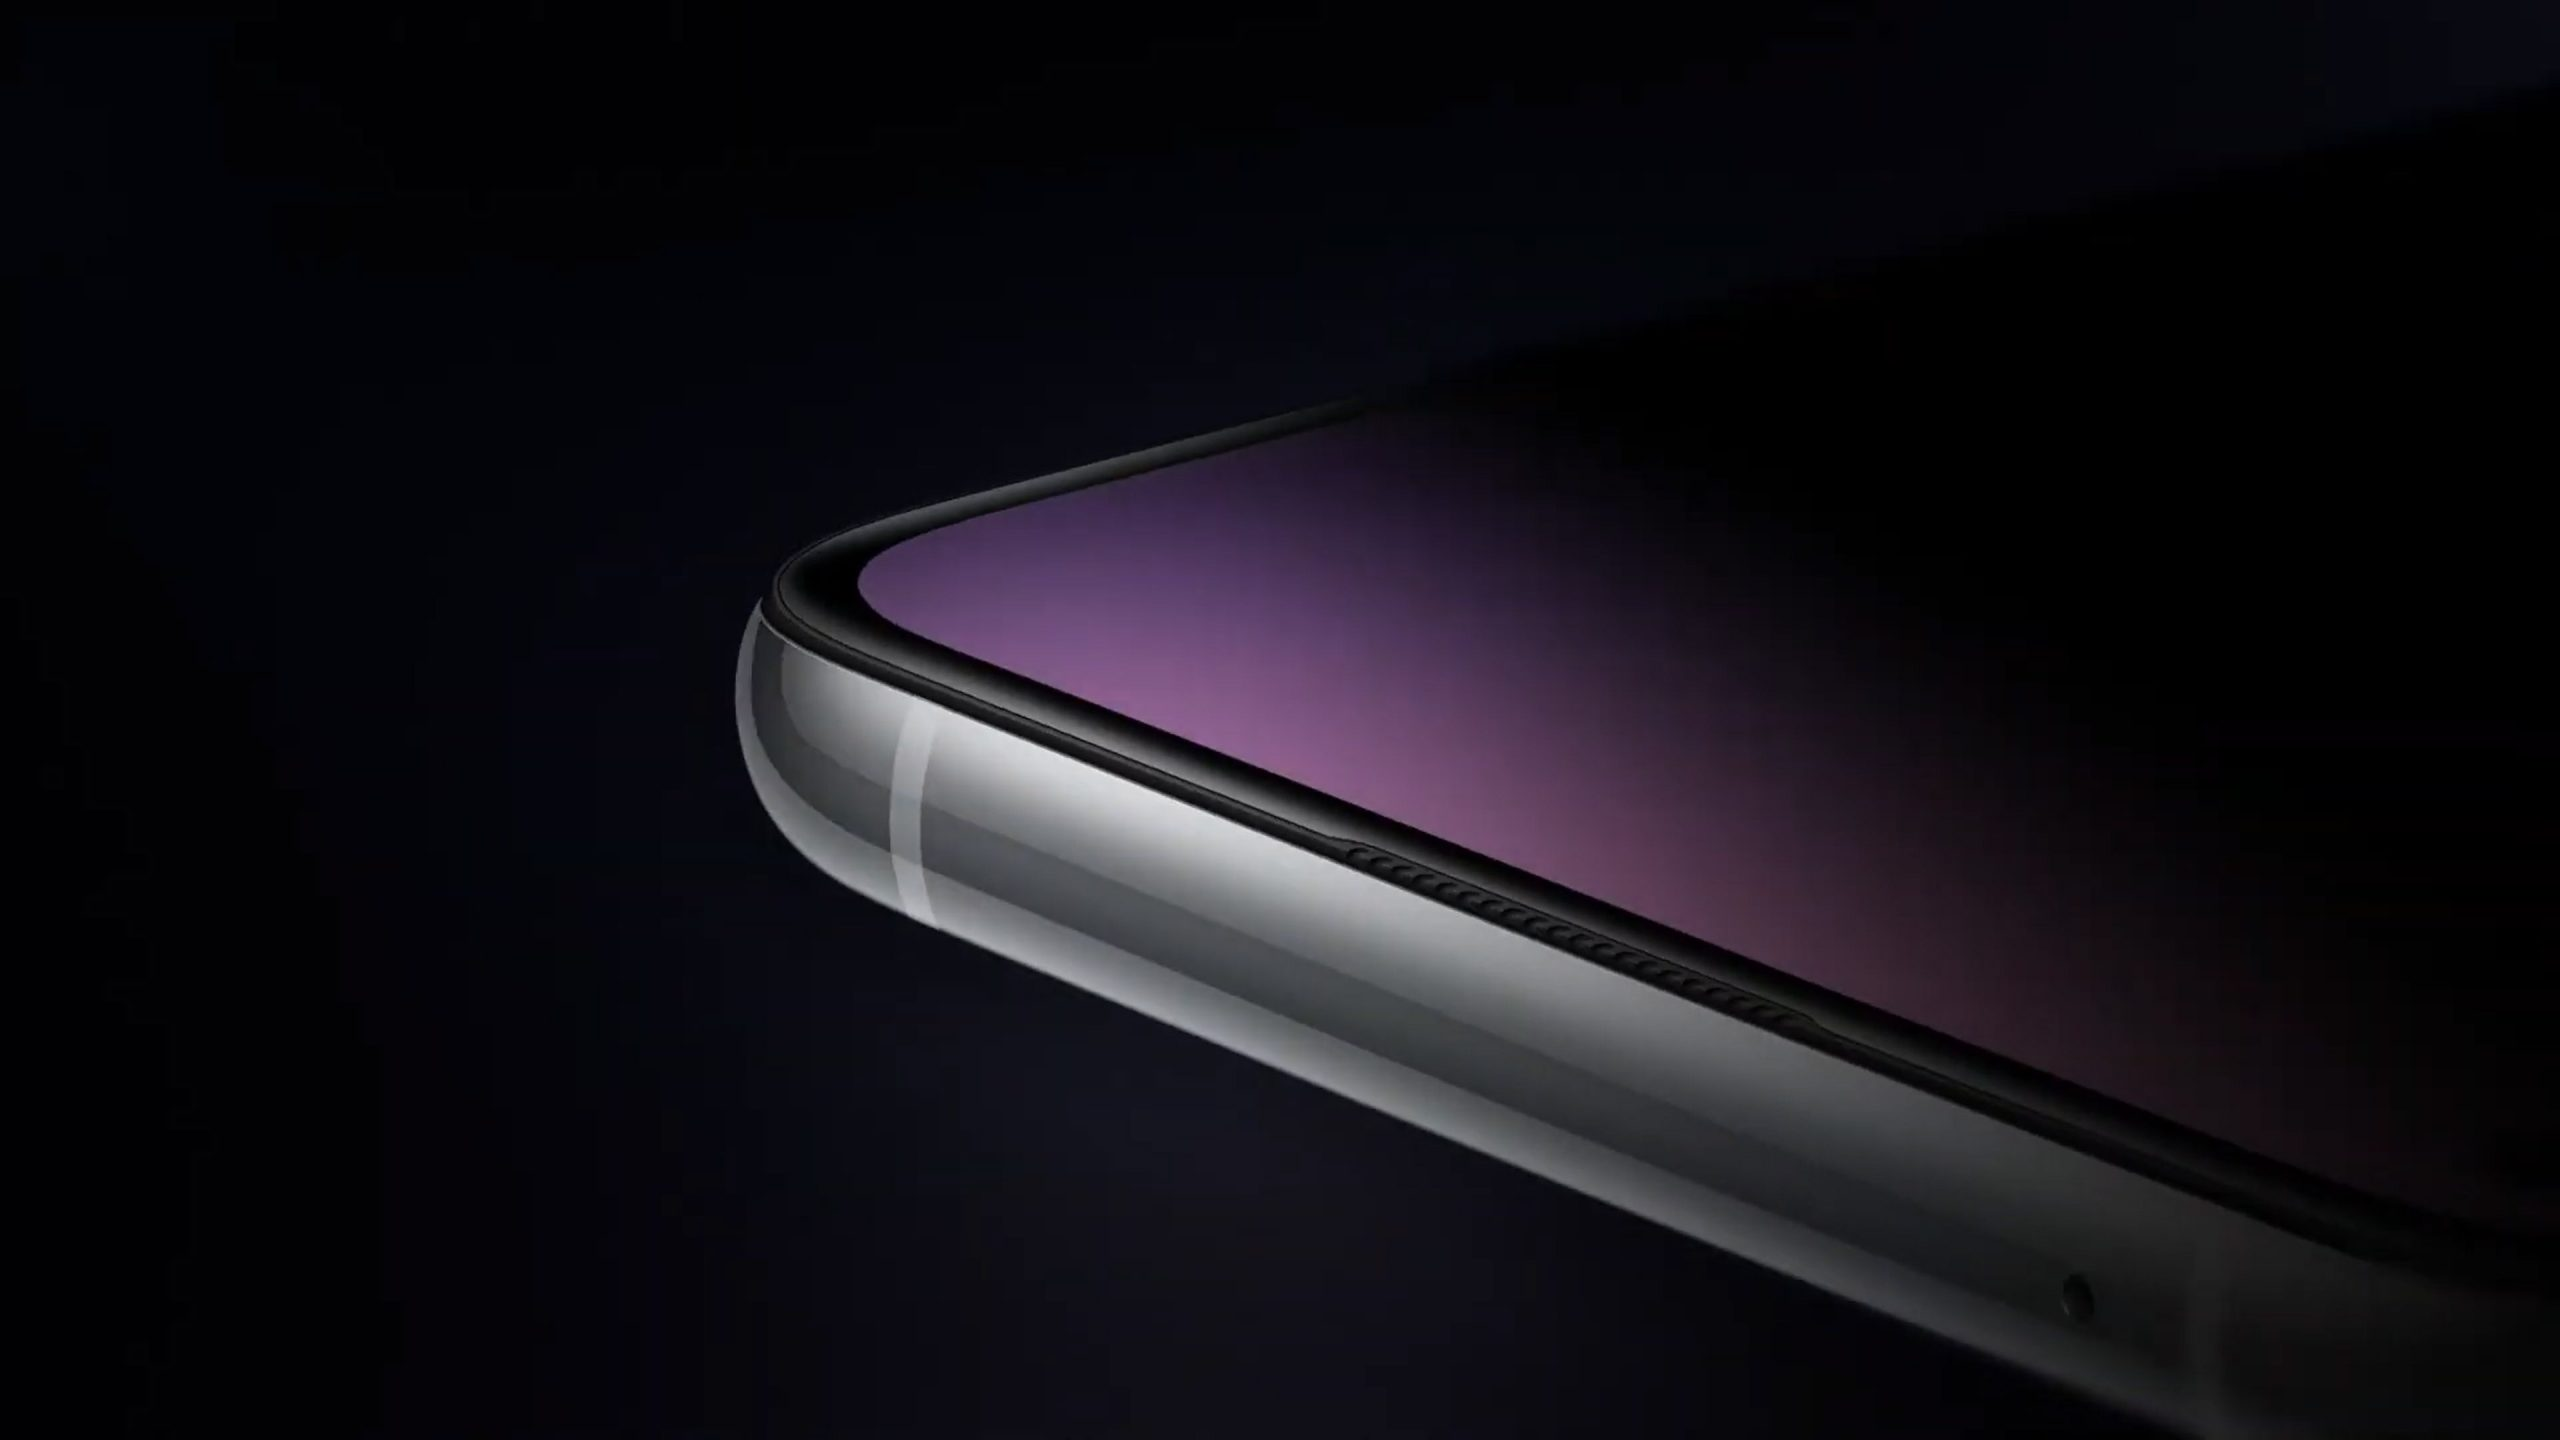 A launch page for upcoming OnePlus 8T spotted on Amazon India